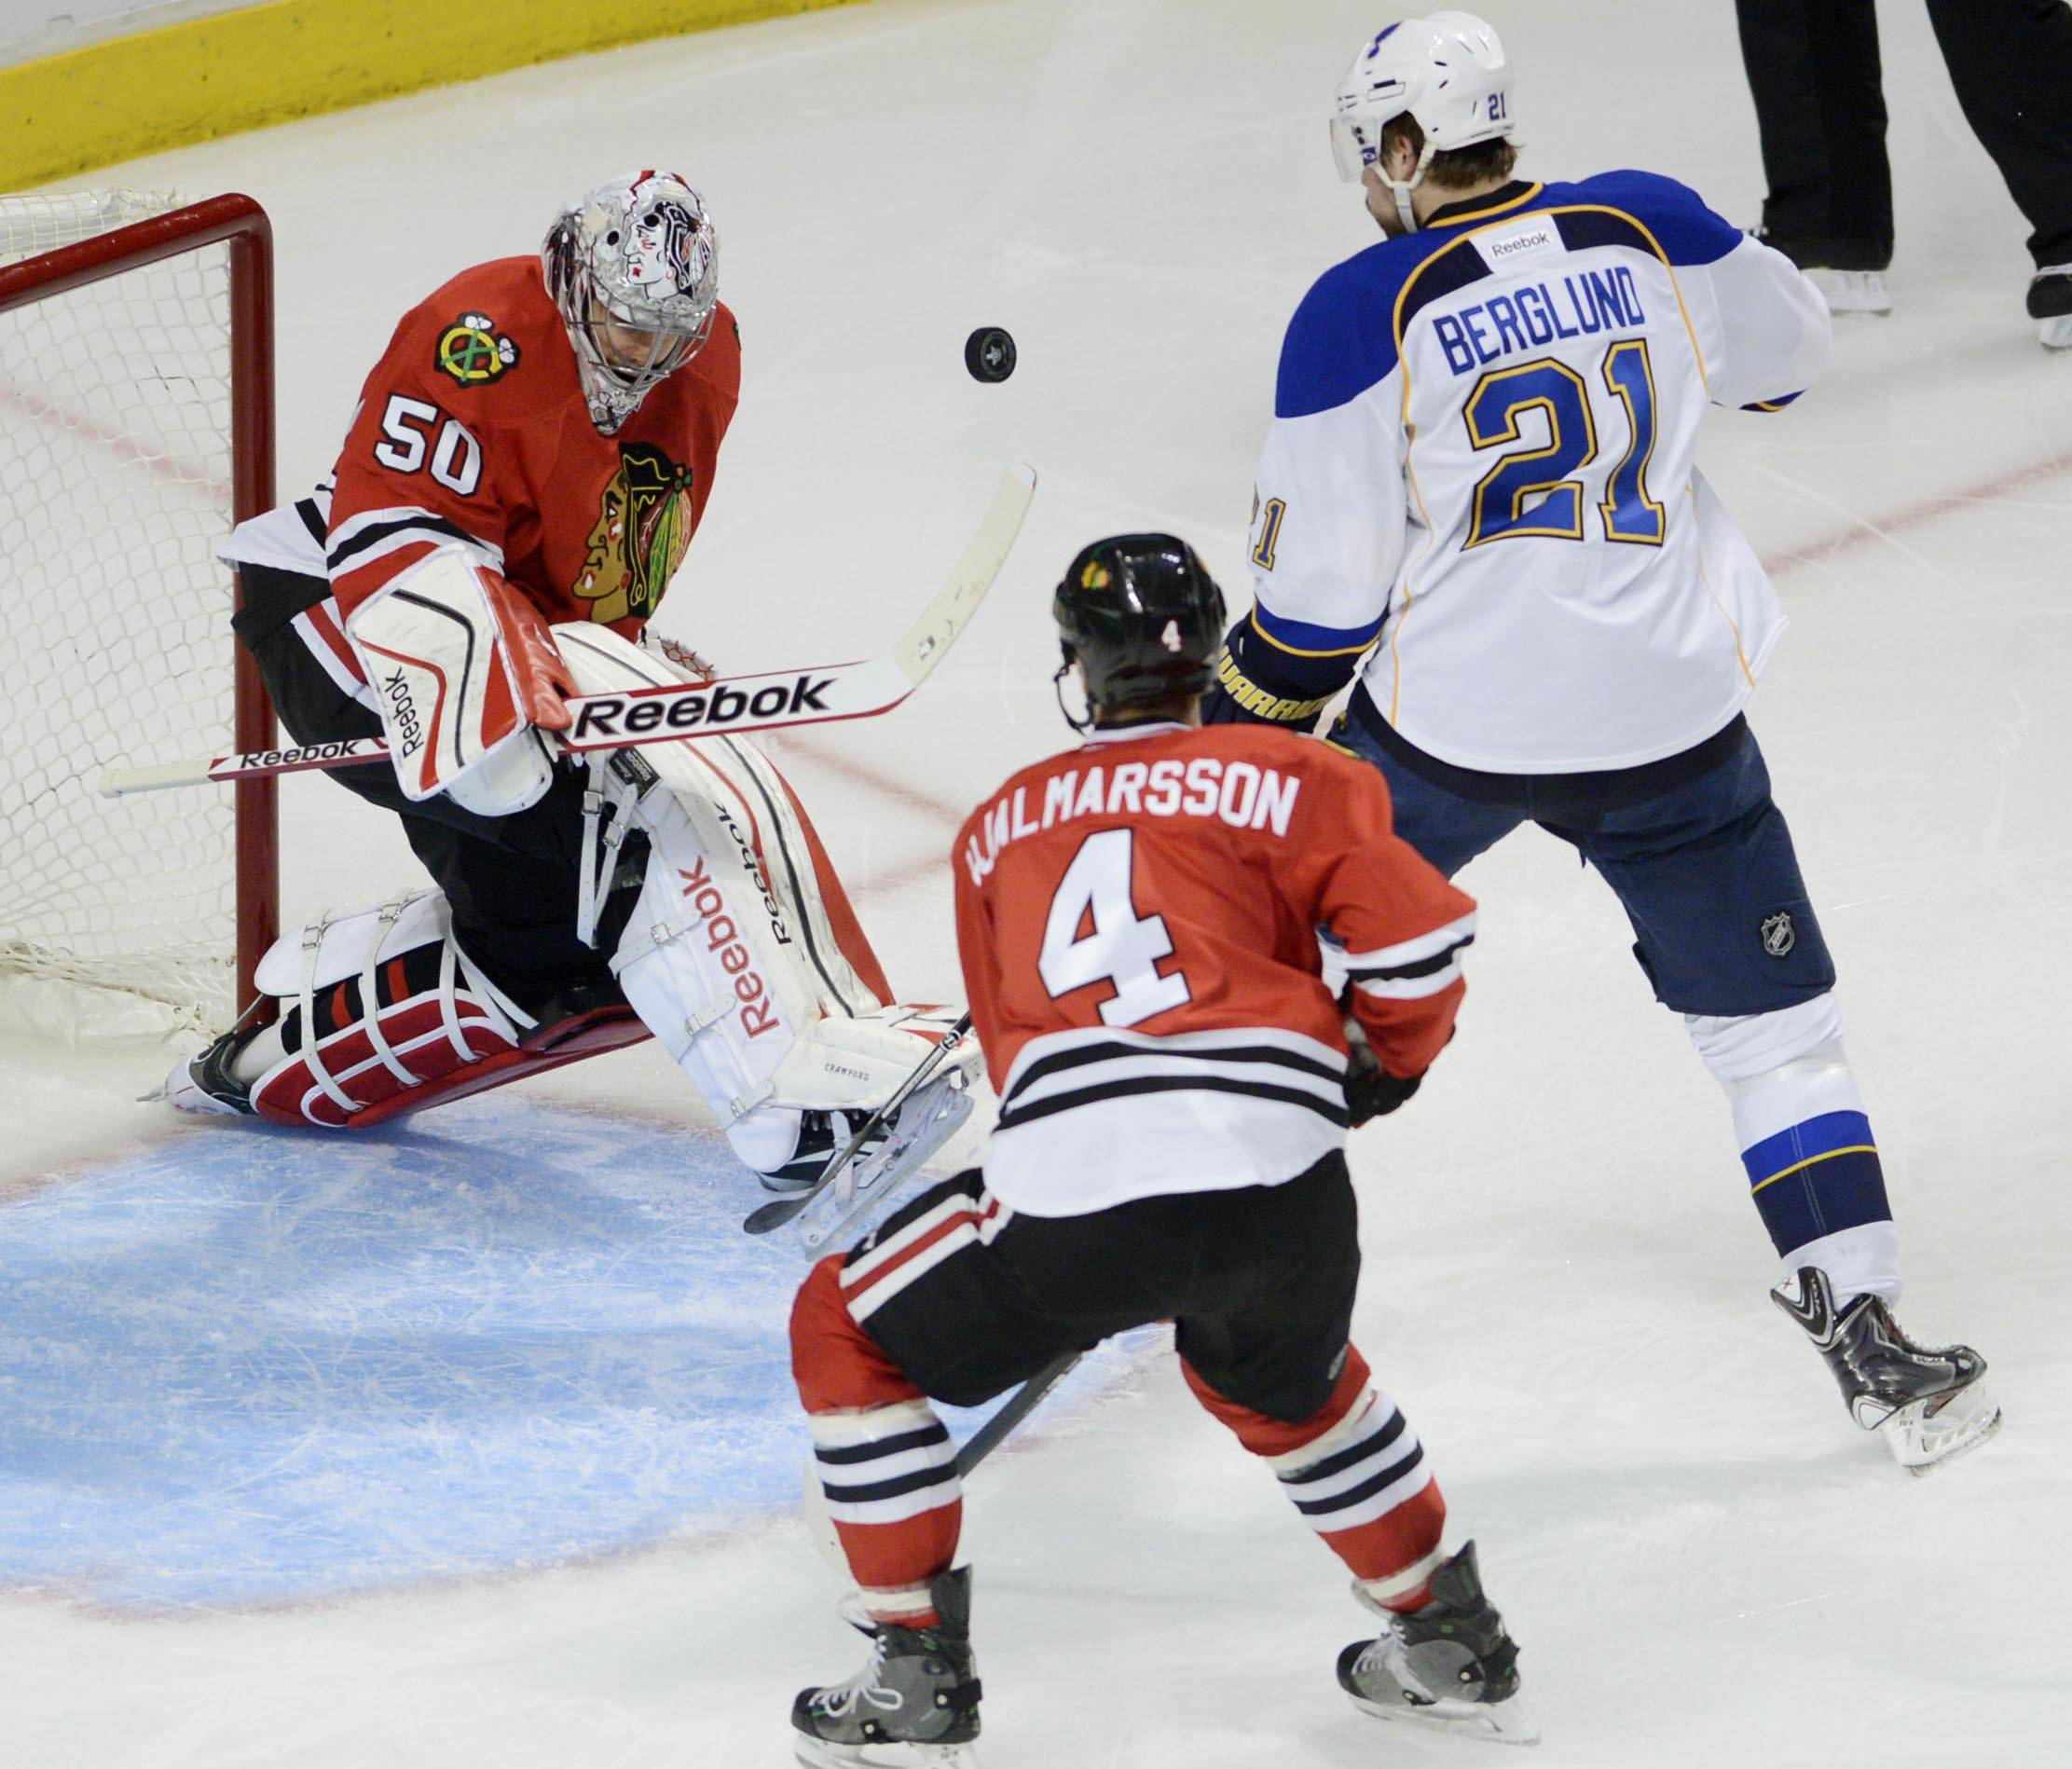 Blackhawks goalie Corey Crawford deflects a shot as Blues center Patrik Berglund and Blackhawks defenseman Niklas Hjalmarsson close in on the net Sunday in Game 6 at the United Center. Crawford finished with 35 saves in the victory.